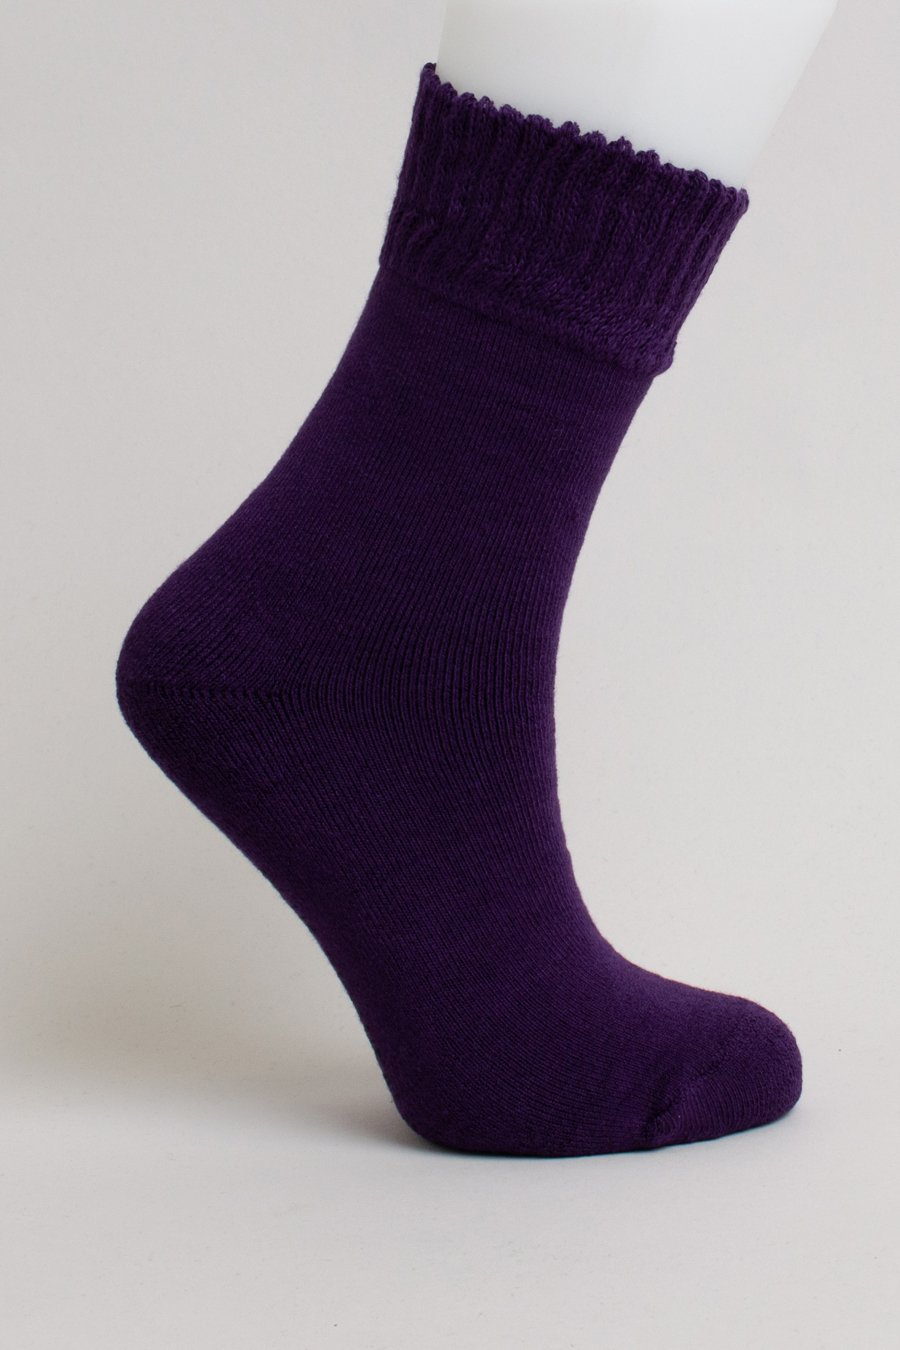 Ladies Health Sock, Bamboo - Blue Sky Clothing Co